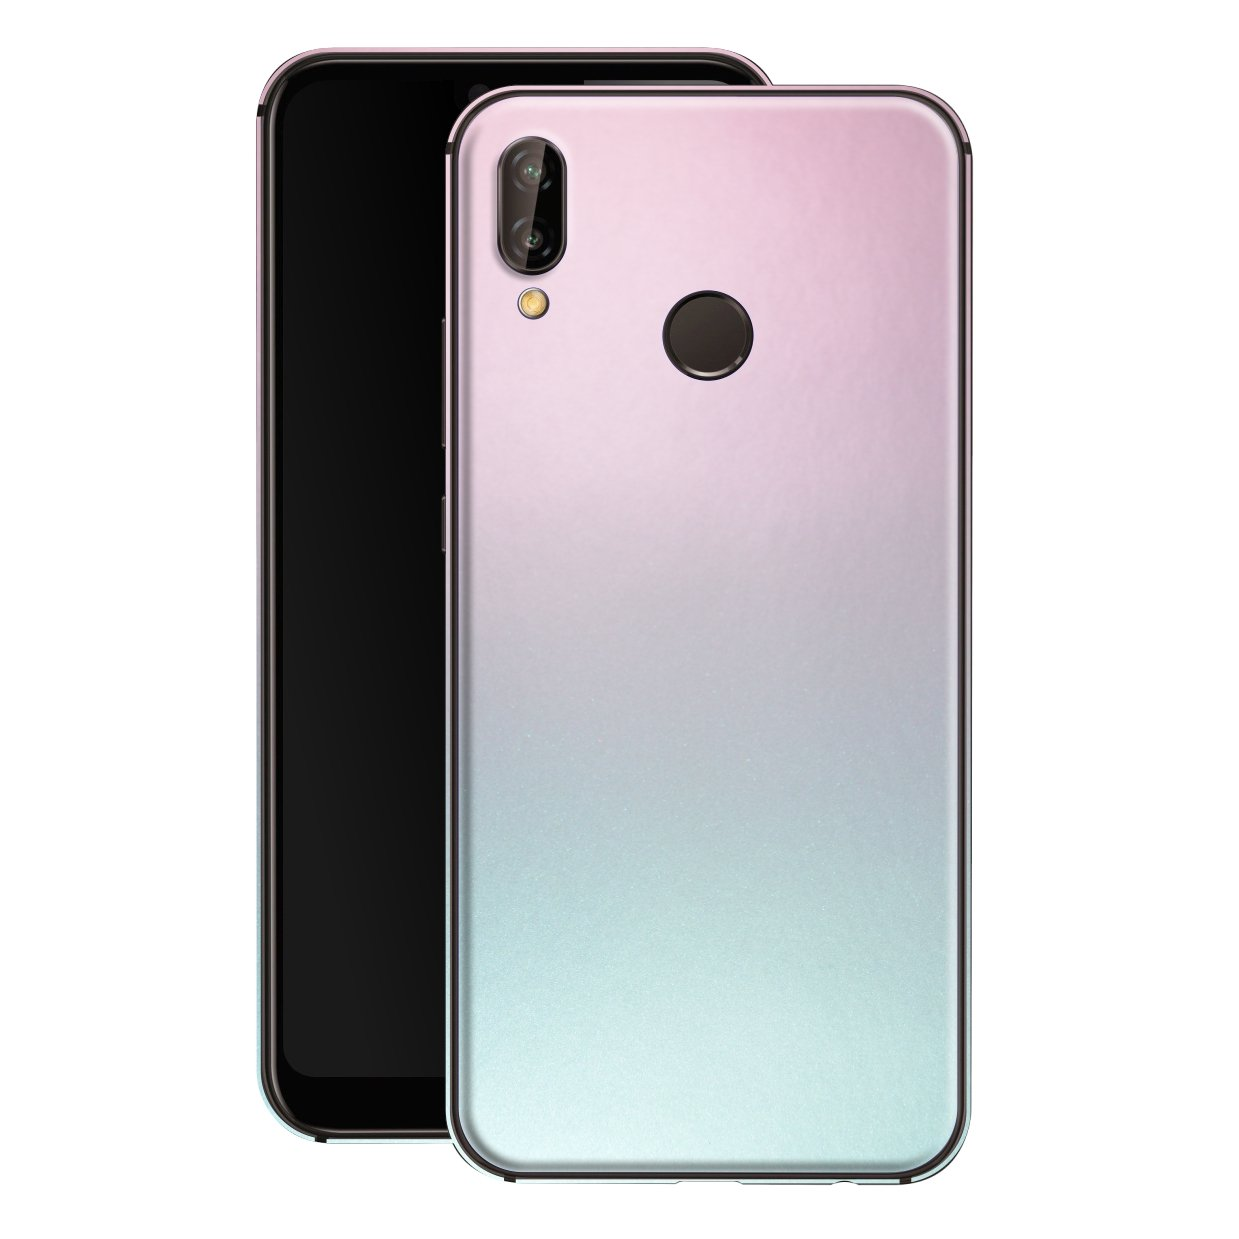 Huawei P20 LITE Chameleon Amethyst Colour-Changing Skin, Decal, Wrap, Protector, Cover by EasySkinz | EasySkinz.com